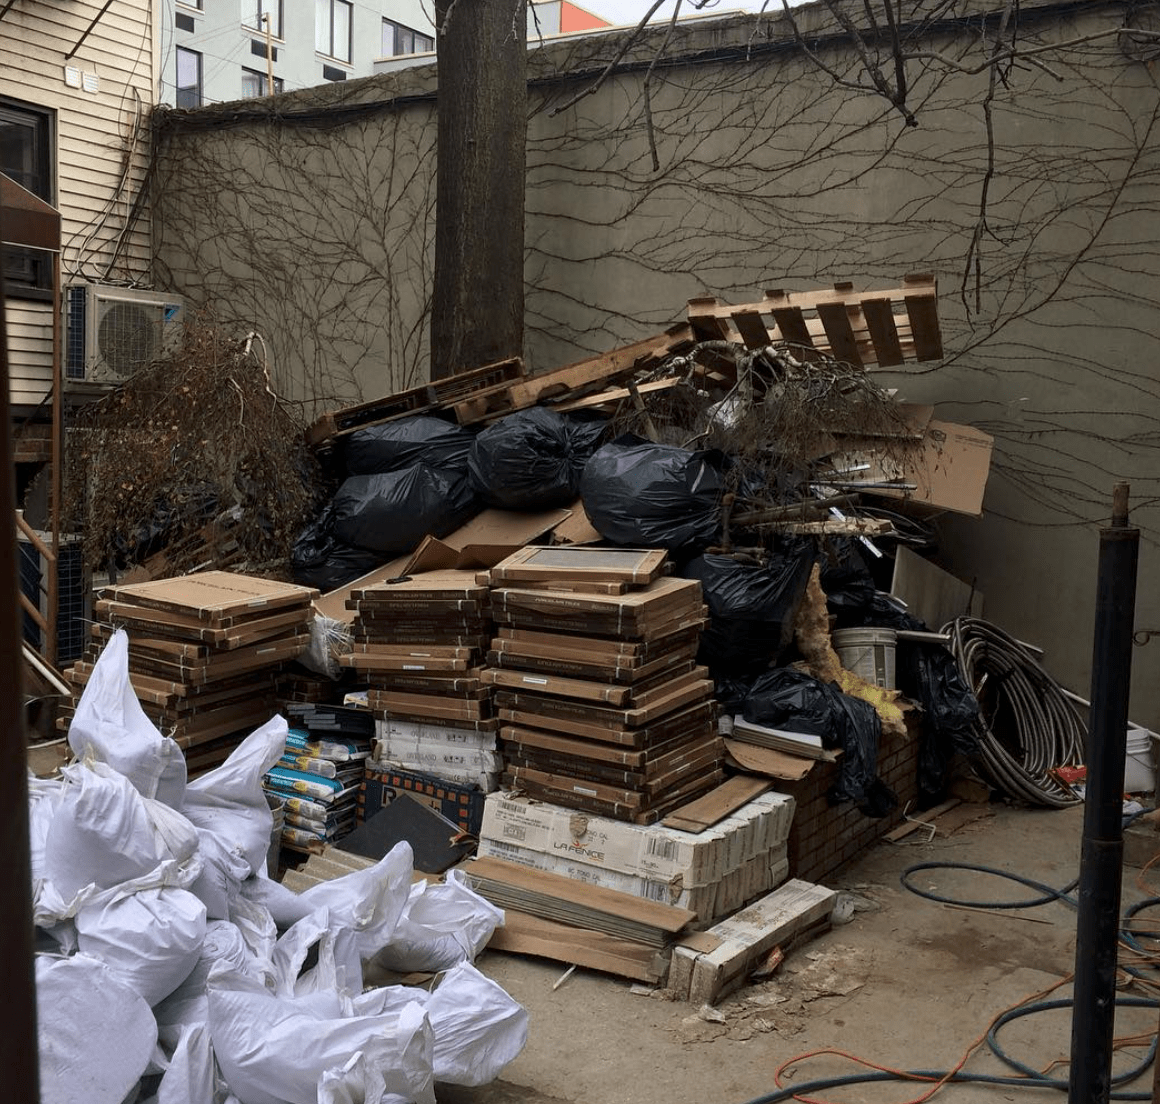 Dirt Cheap Apartments For Rent: Rent-Stabilized Tenants Allege Landlord Harassment, Unsafe